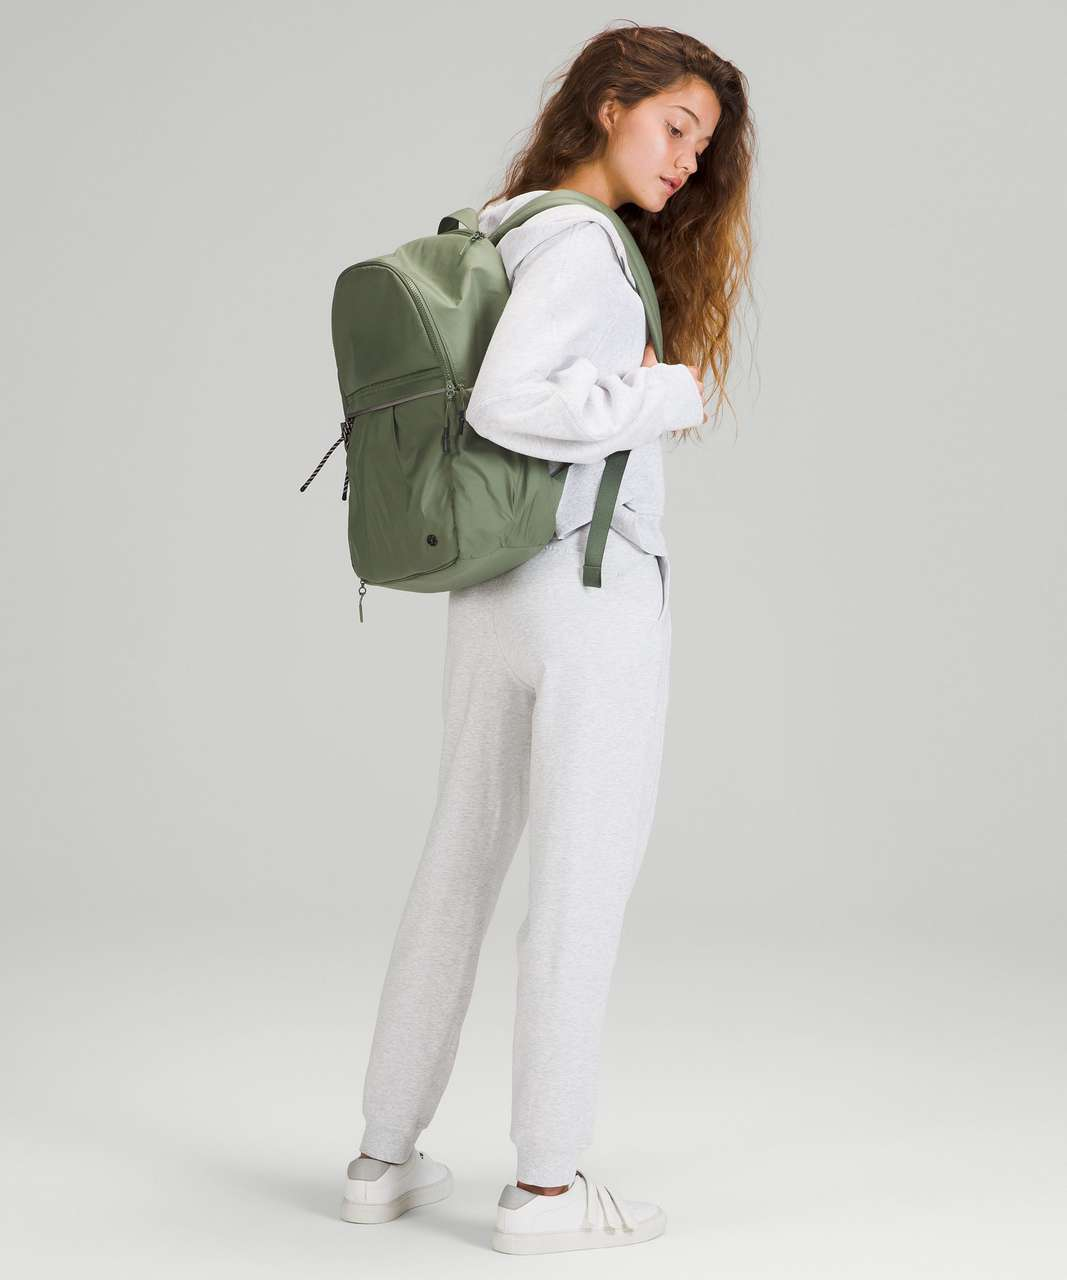 Lululemon Pack it Up Backpack 21L - Green Twill